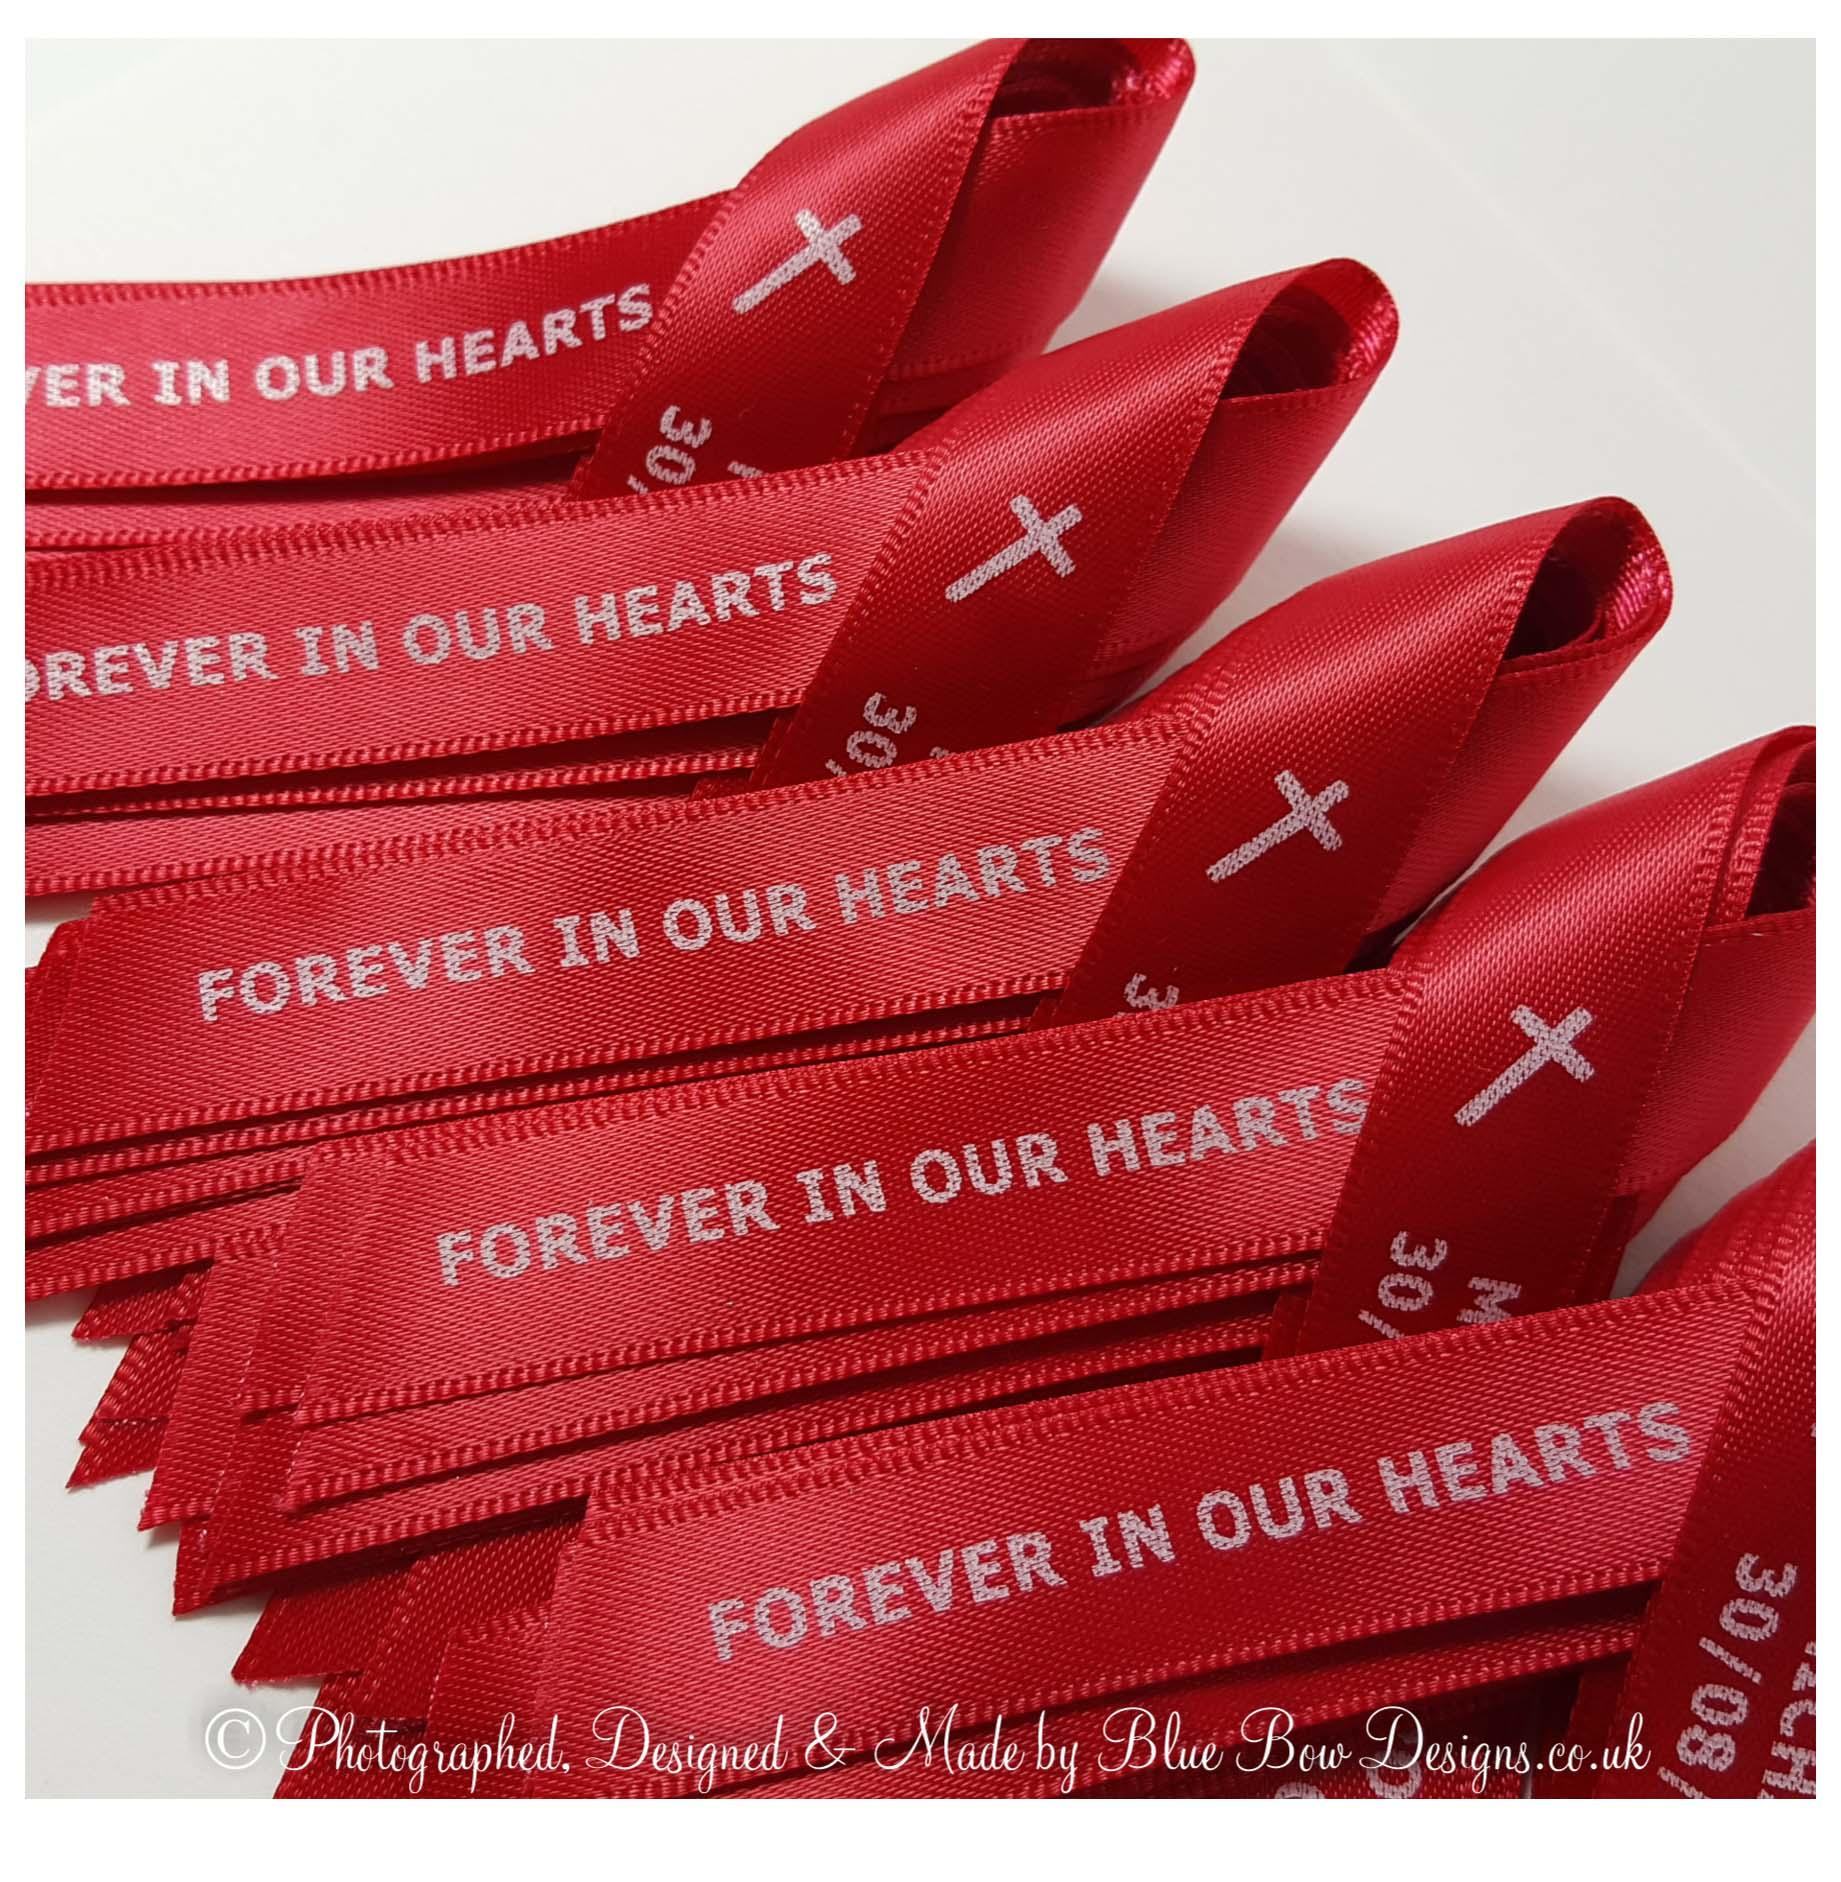 Red and white print funeral memorial ribbons